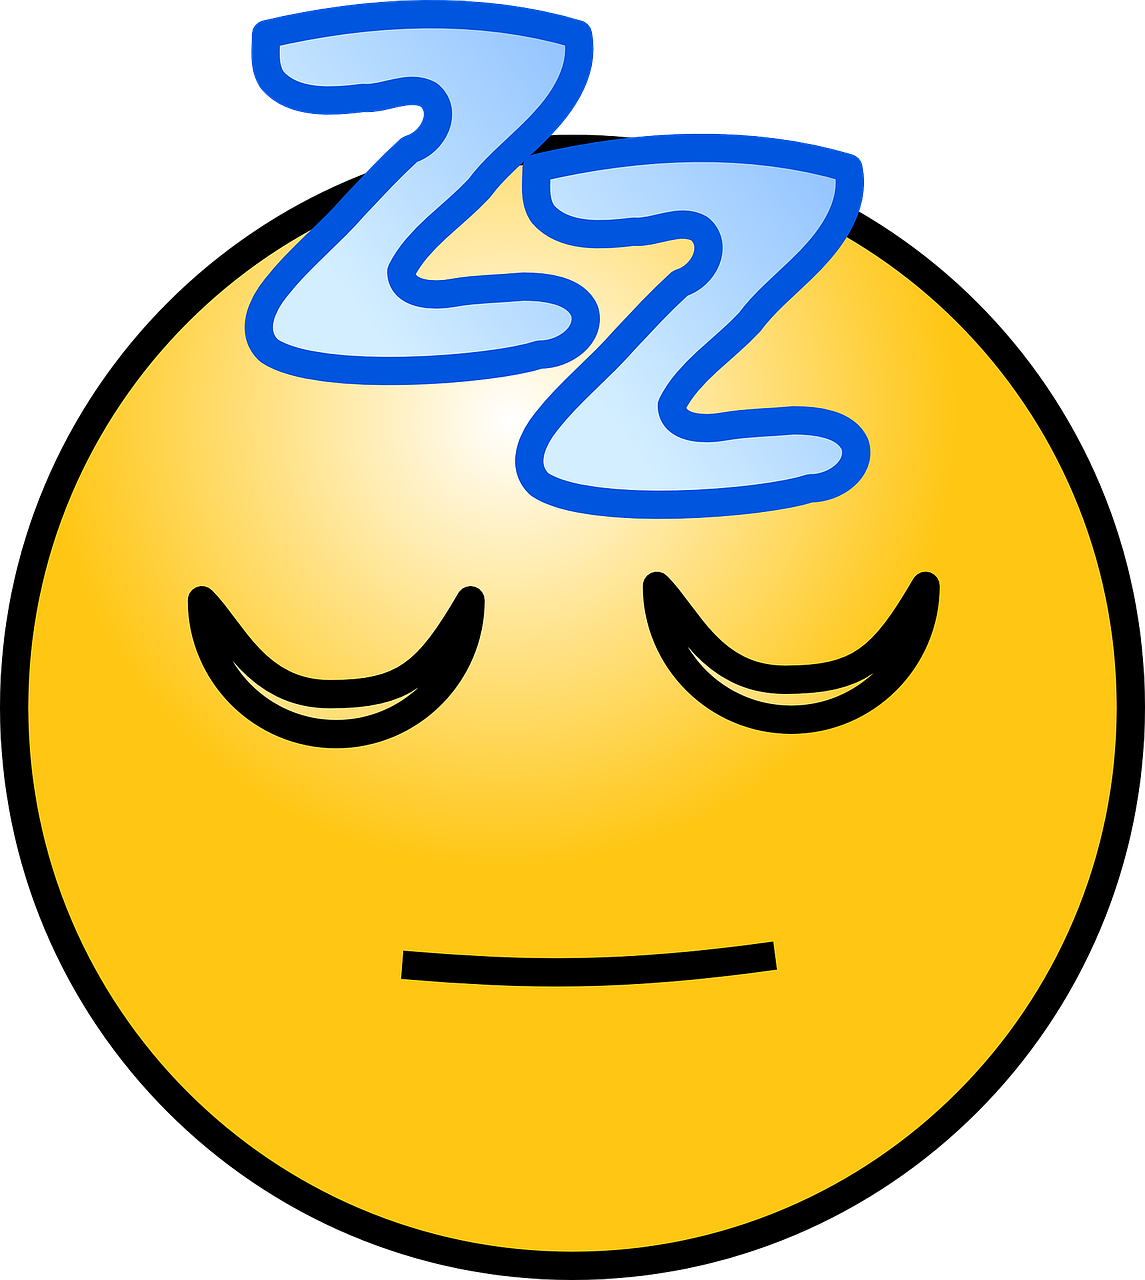 sleep sleeping emoticons free photo